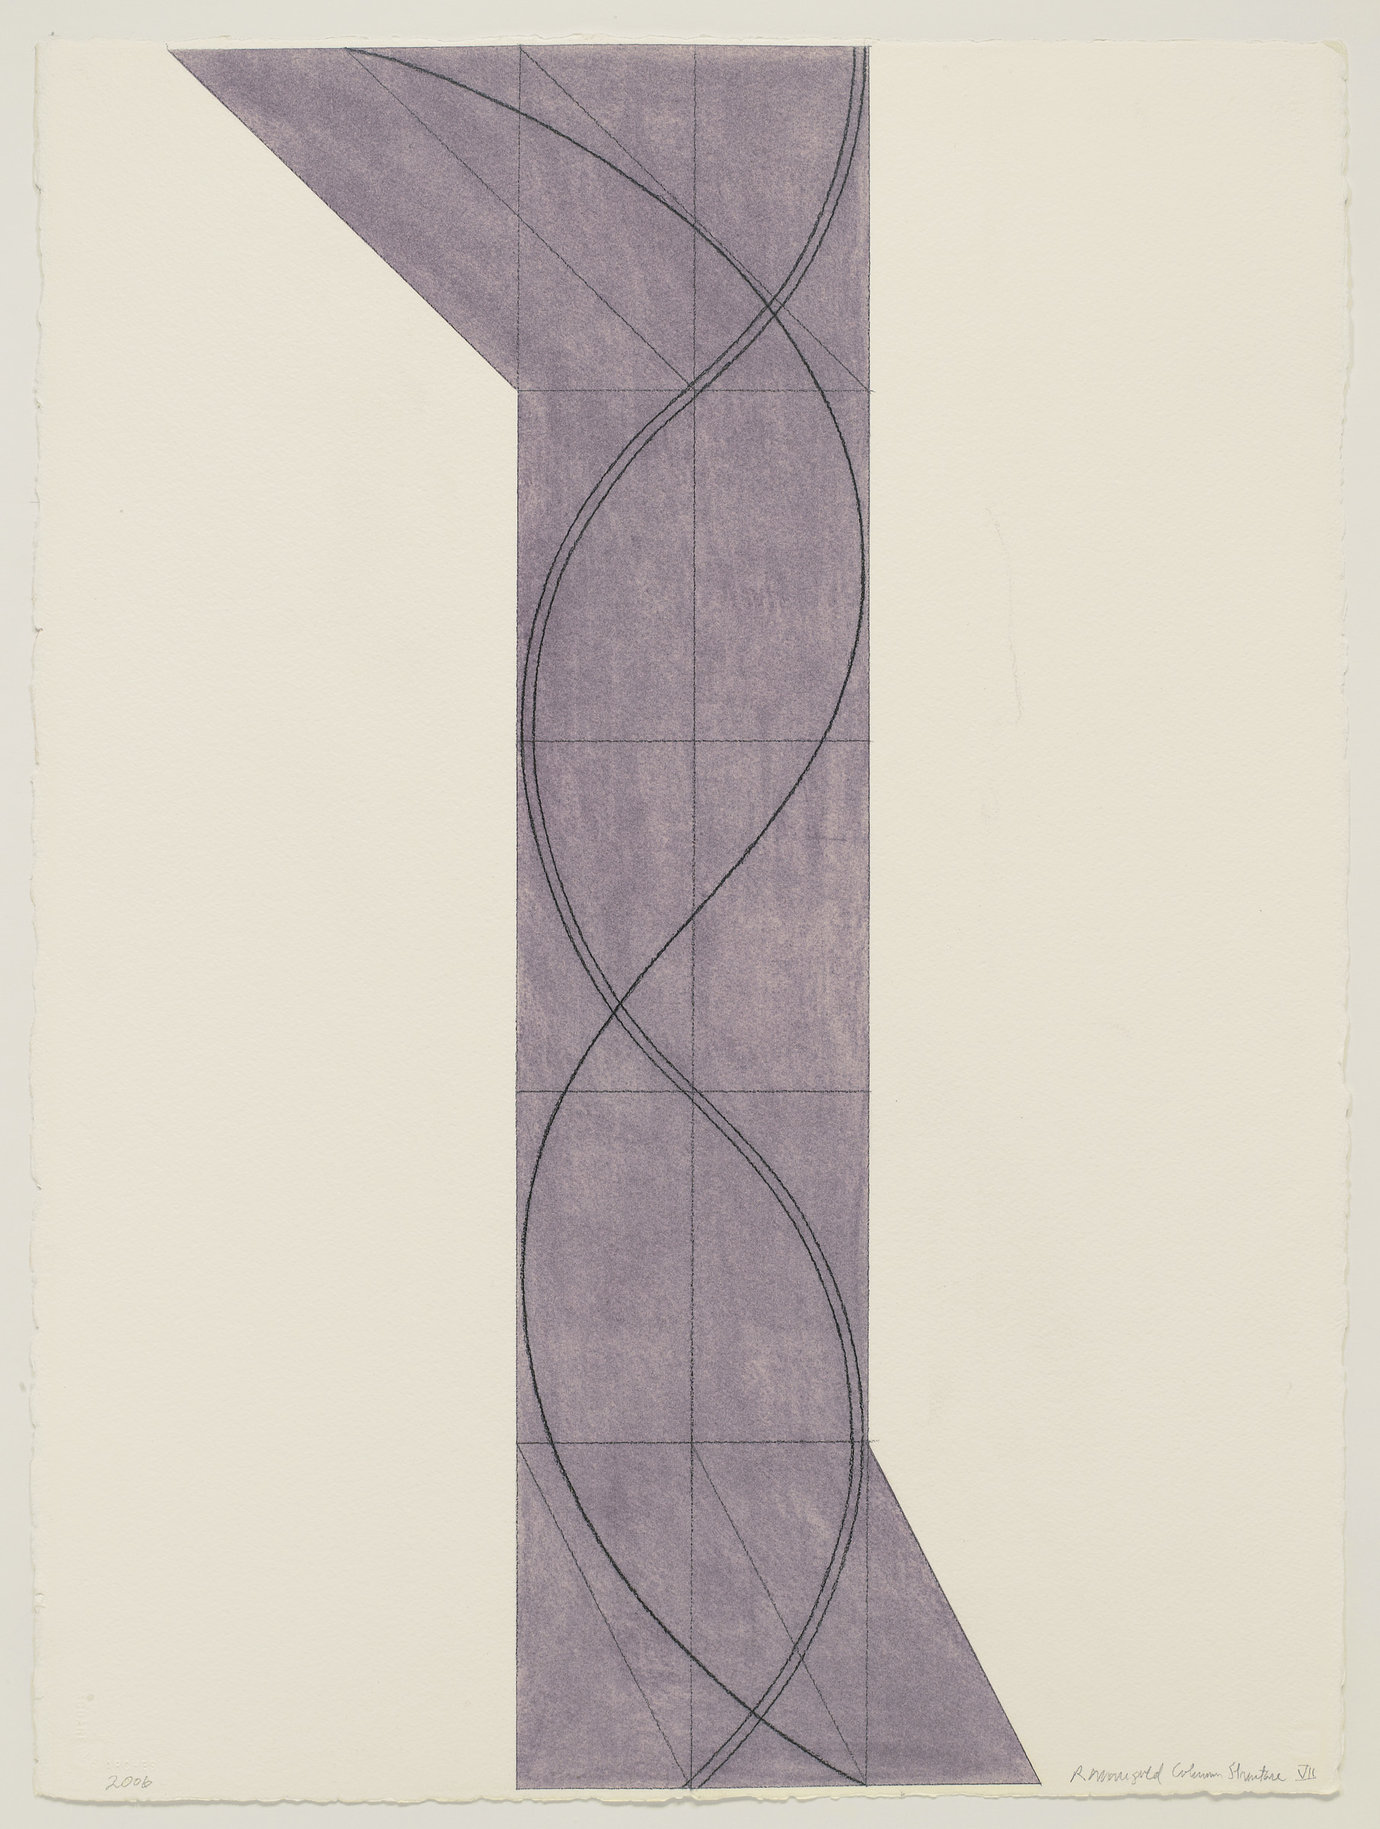 ", 2006. Pastel and black pencil on paper, 30-1/4"" x 22-1/2"" (76.8 cm x 57.2 cm)."